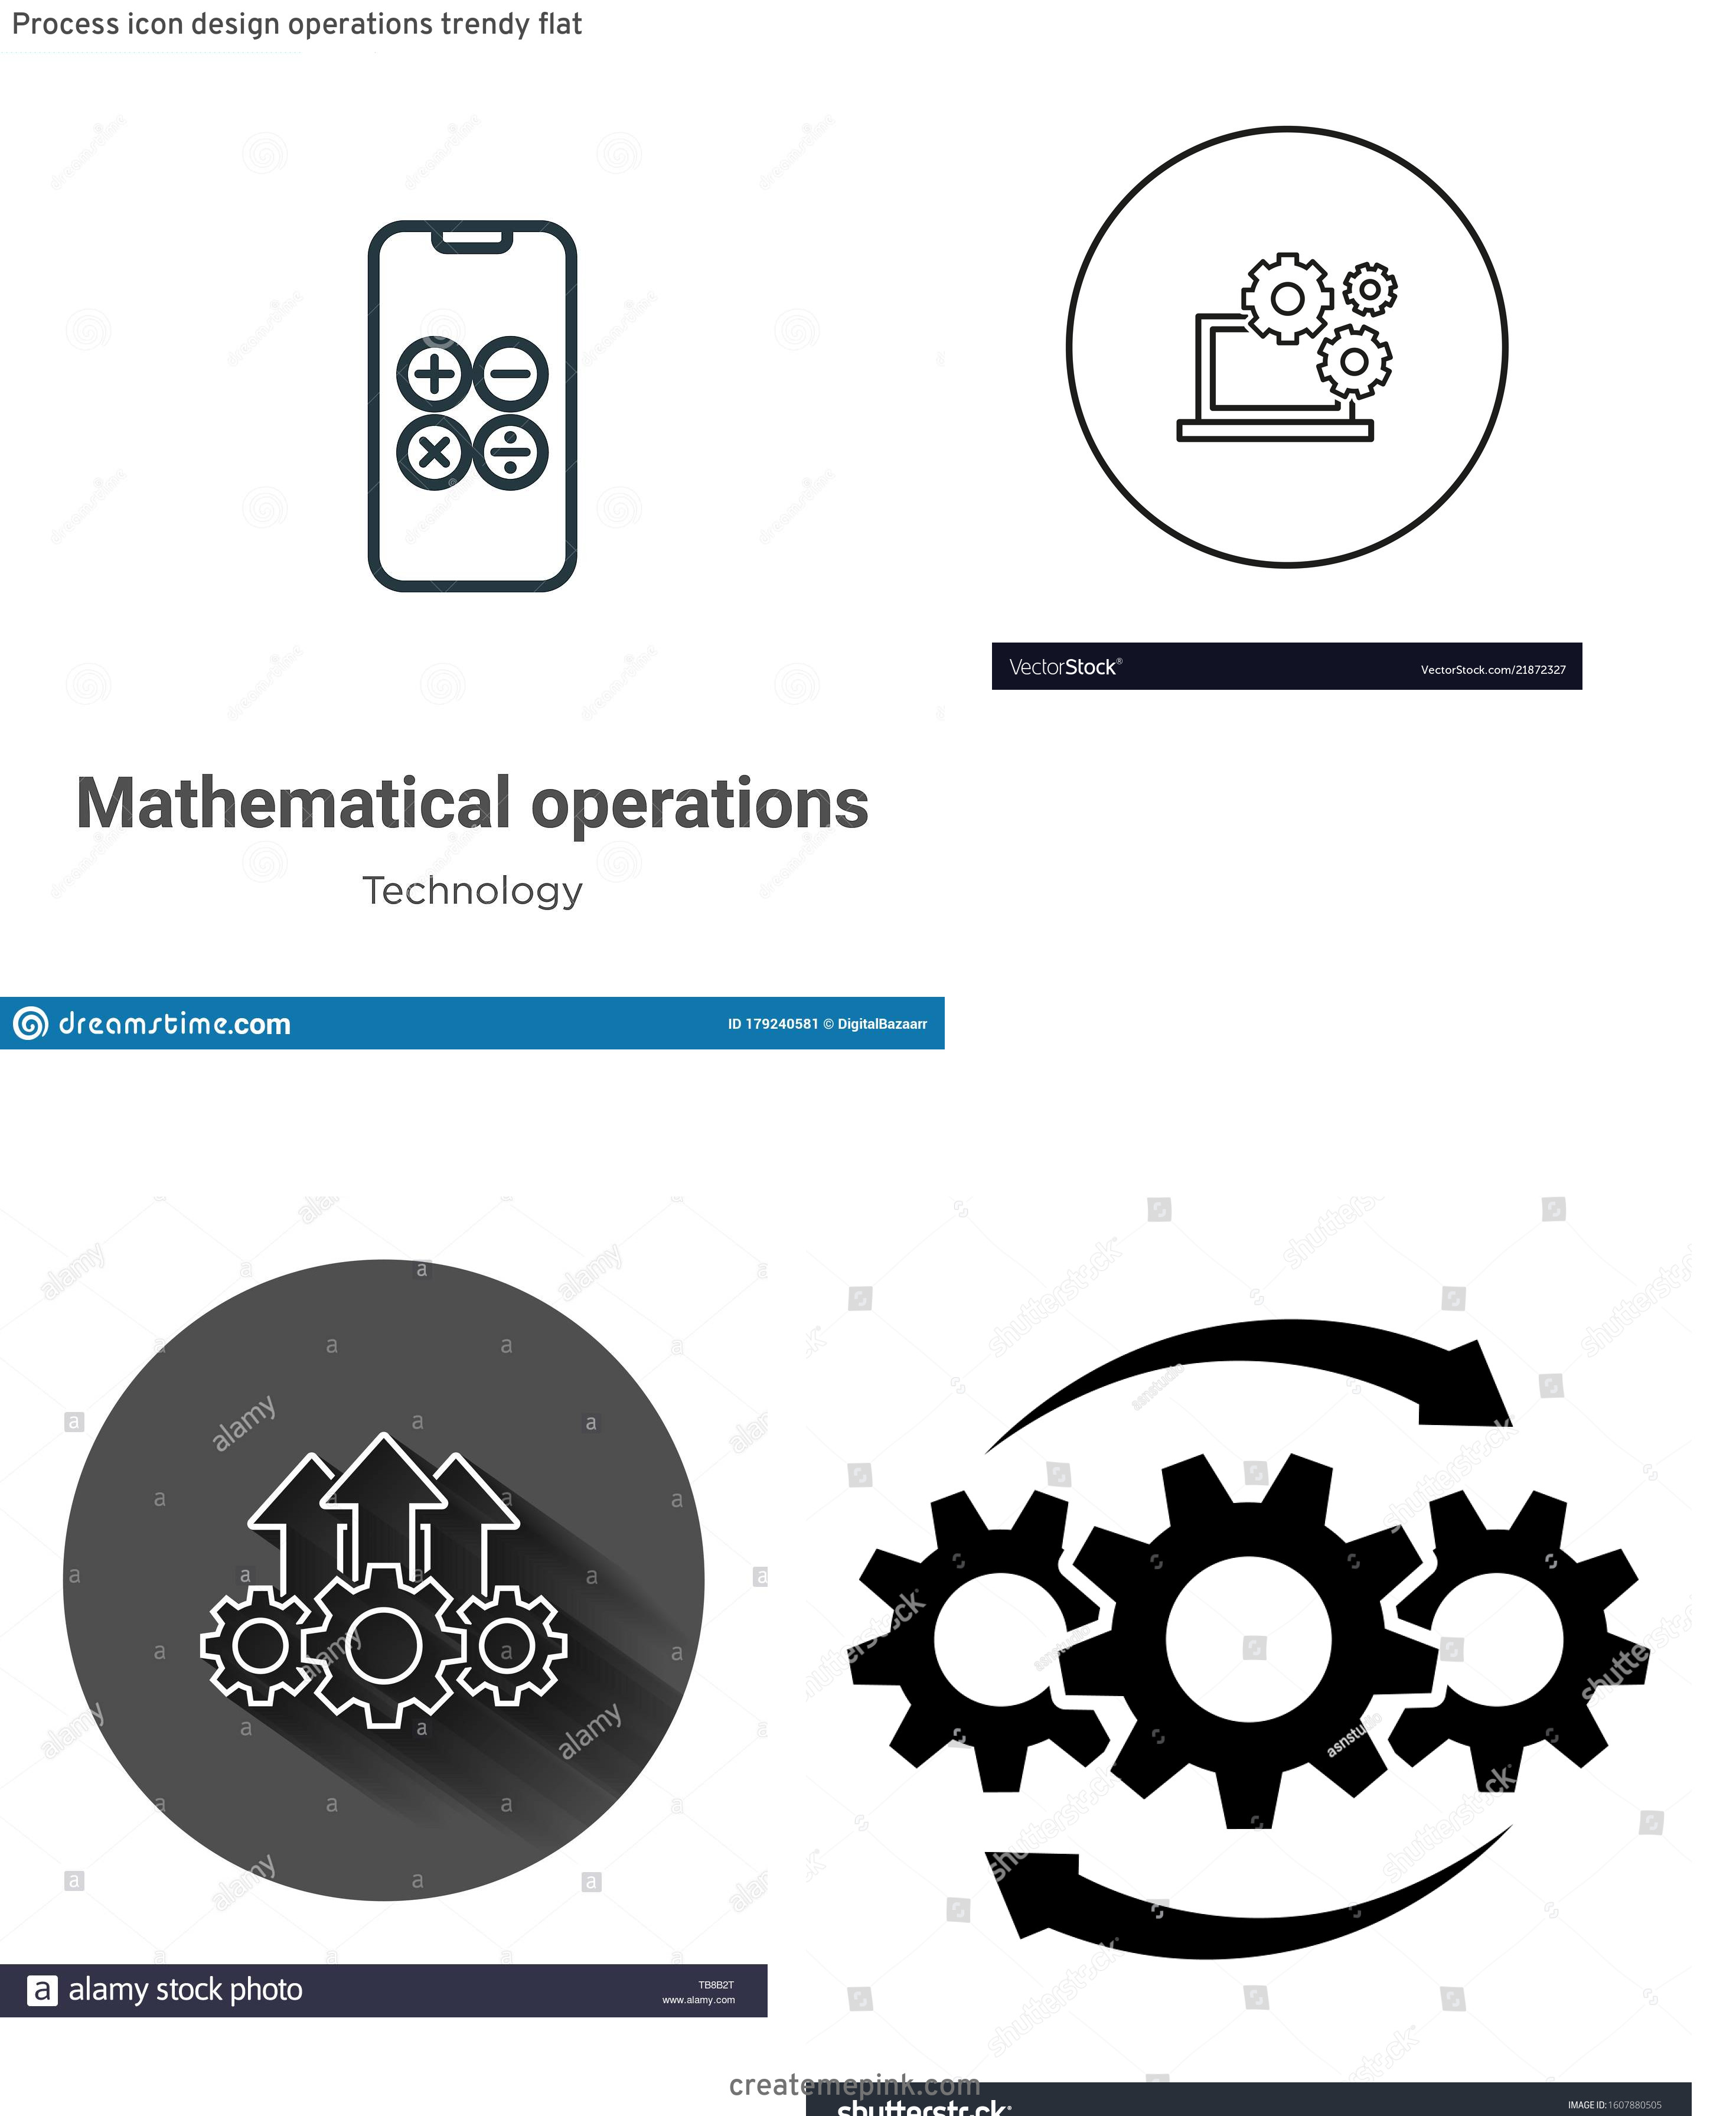 Operations Icon Vector: Process Icon Design Operations Trendy Flat